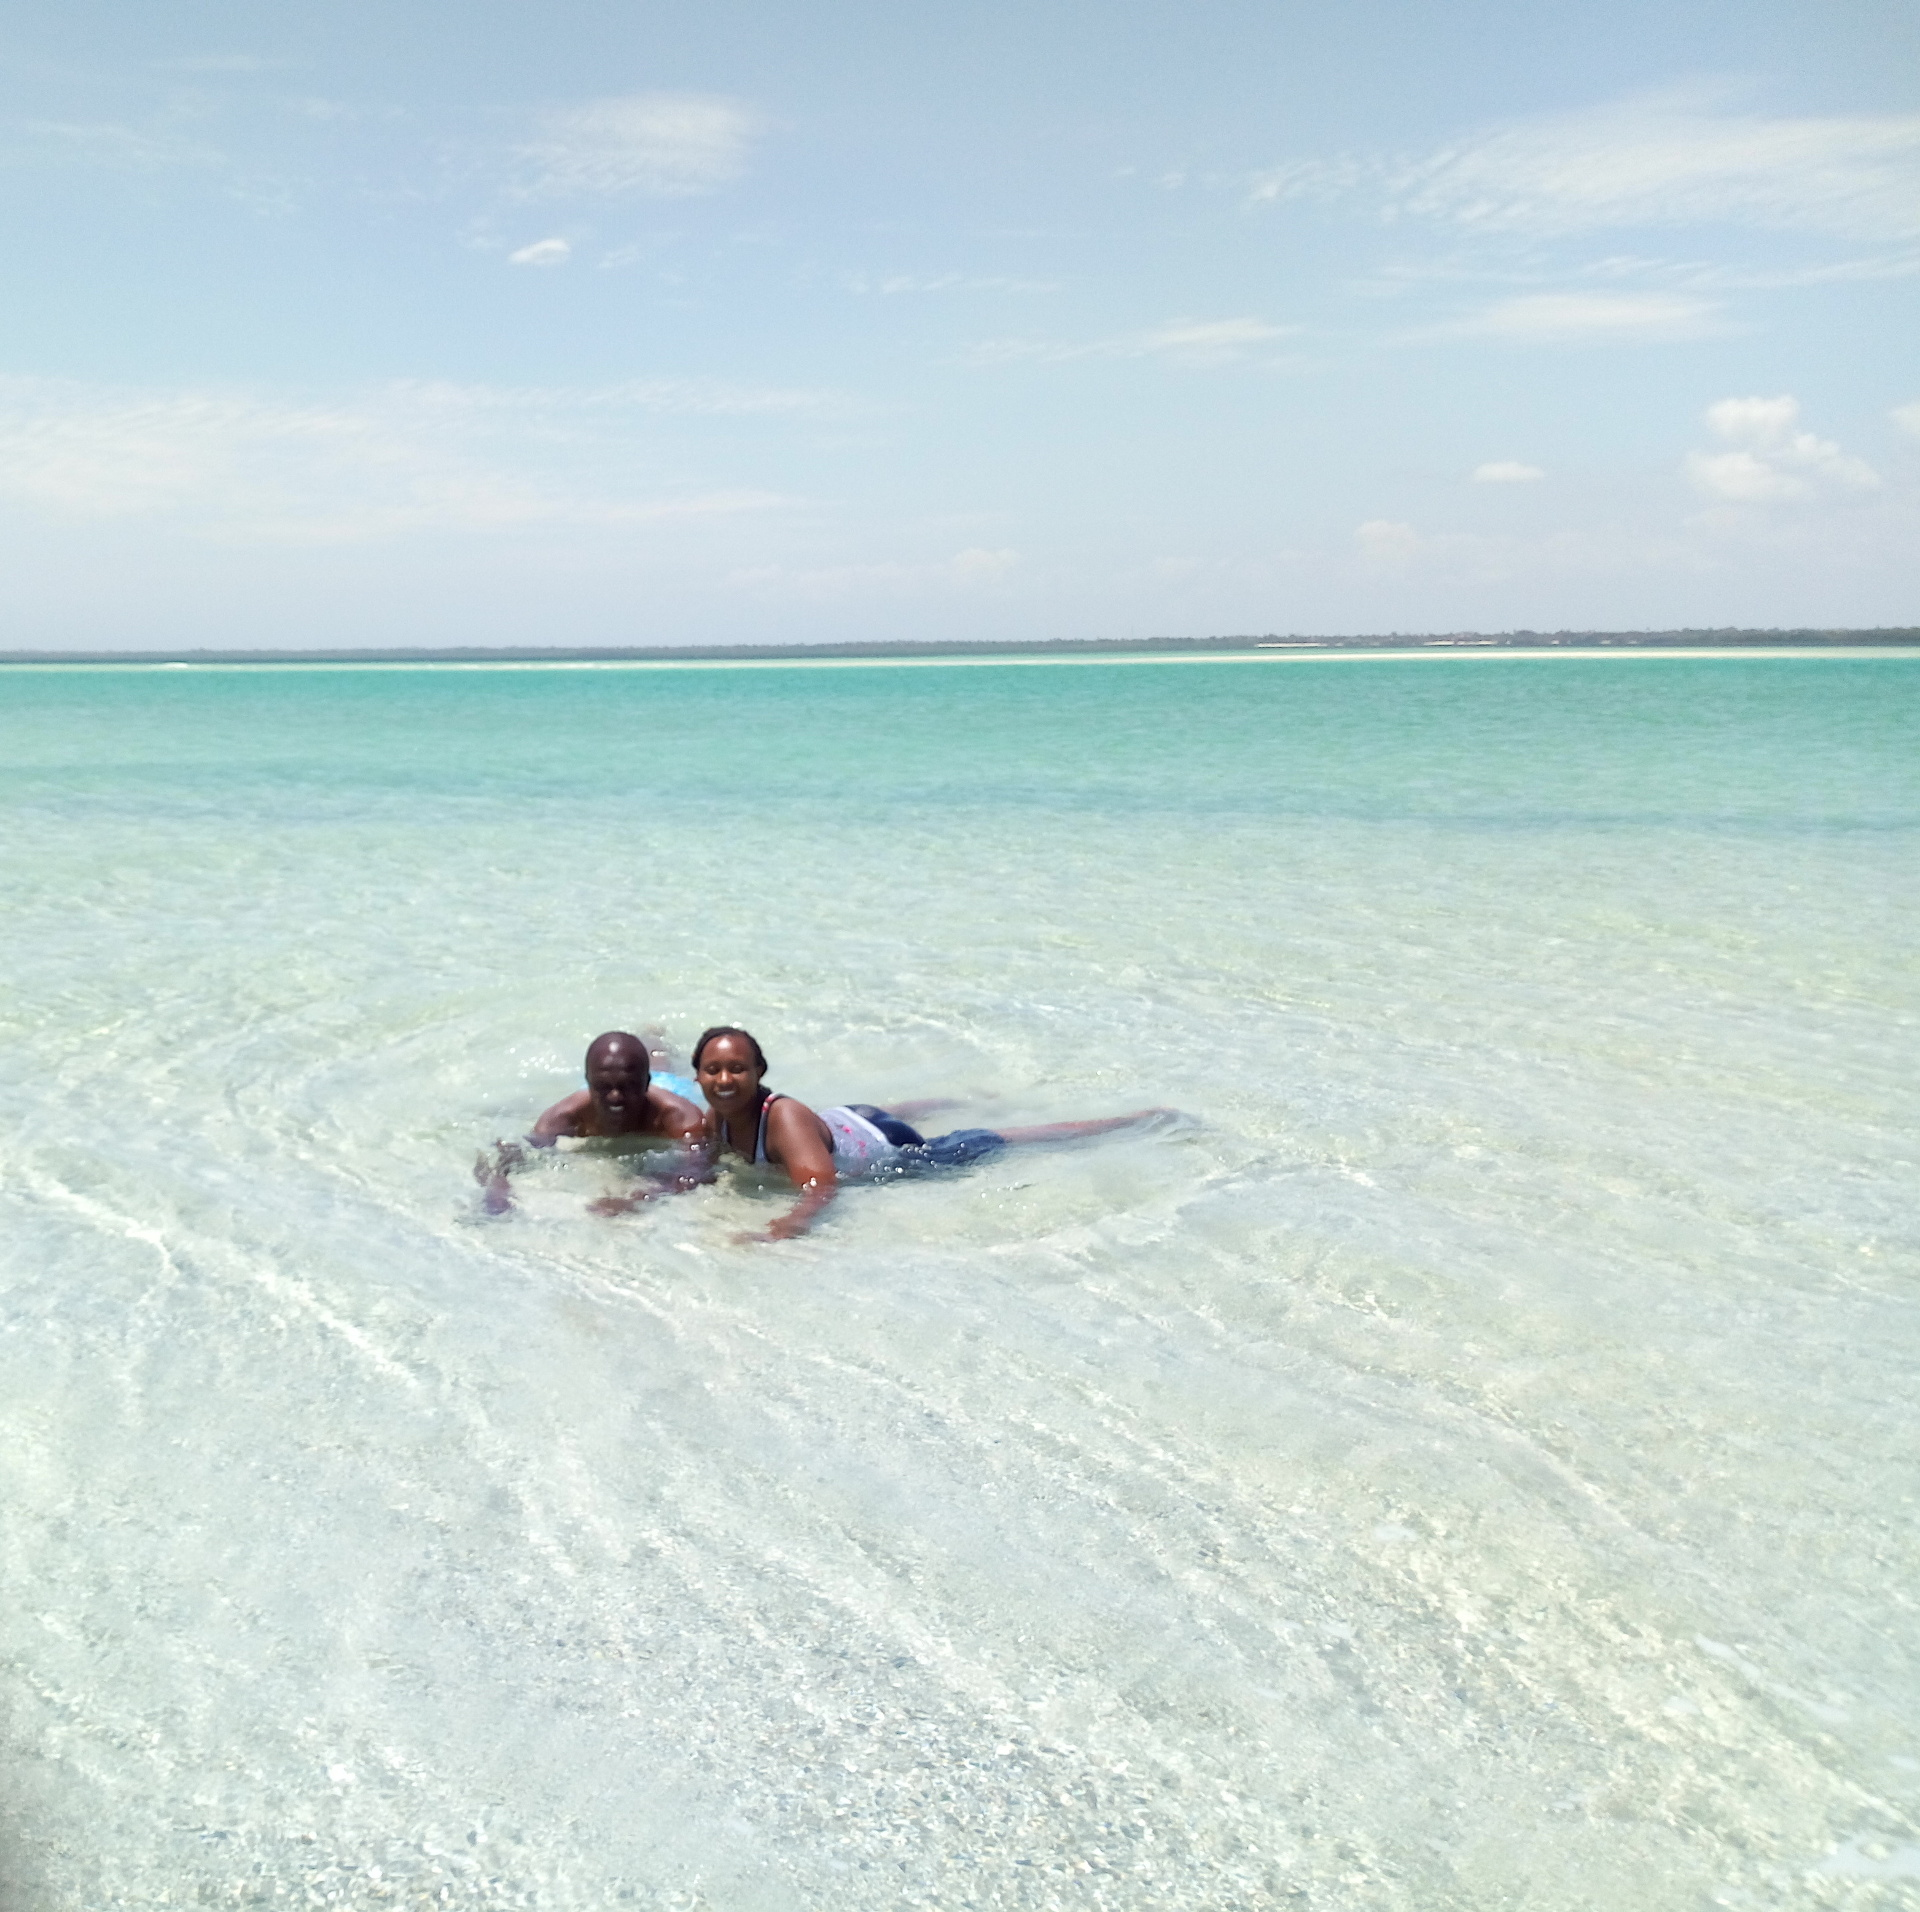 Enjoying The Calm Waters of Lost Paradise With My Wife